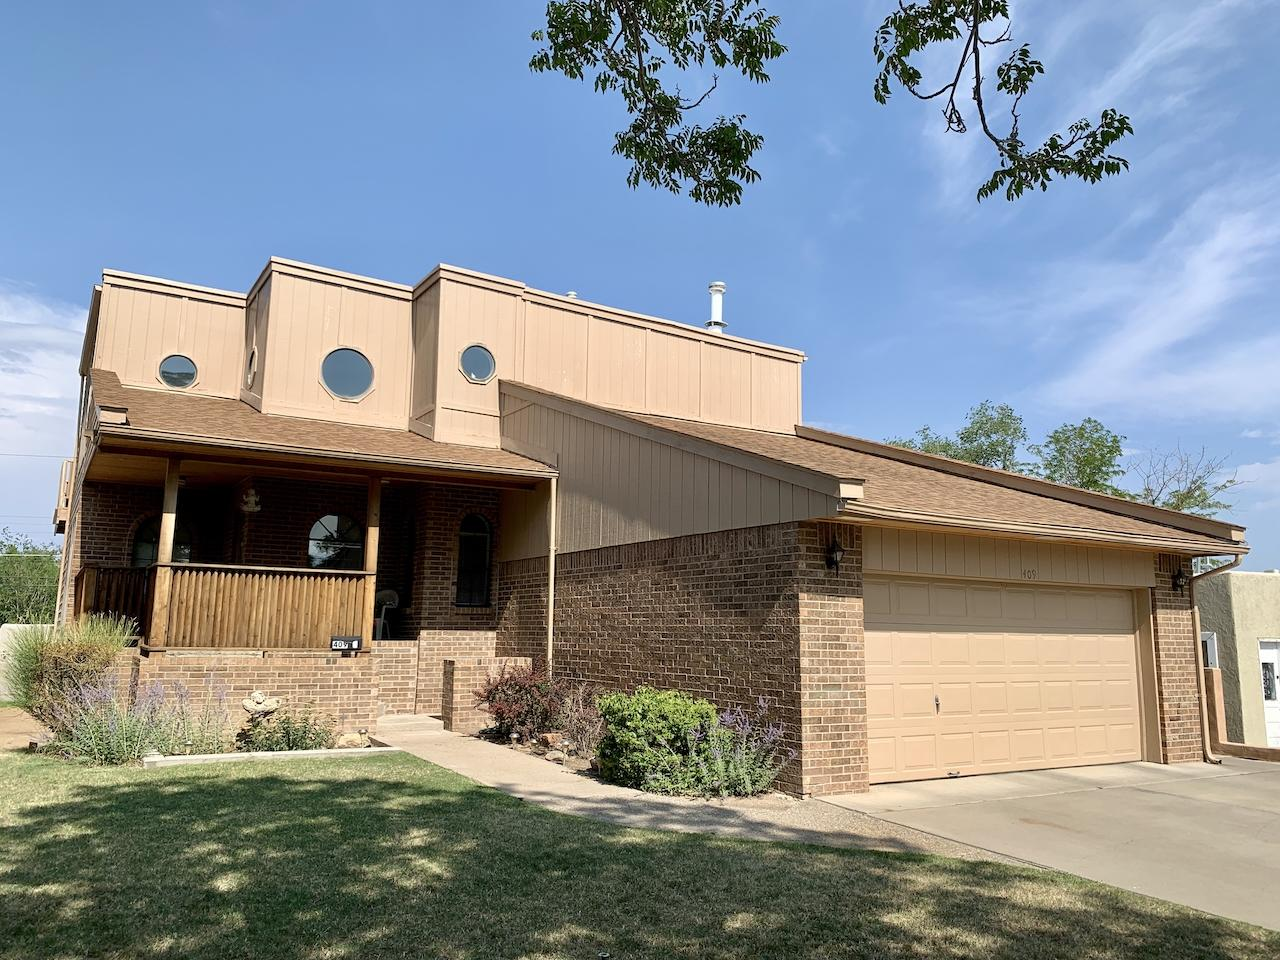 PRICE CHANGED to May 2021 appraisal value! This gorgeous home is just 5 minutes from Nob Hill & UNM. The front covered patio welcomes you into the main level which includes an office or family room just inside the front door. The sunken living area boasts high ceilings with big windows and lots of light! There is a tiled sitting room right off of the kitchen with access to a large outdoor patio for grilling and entertaining. Relax on the balcony off of the huge 550 SqFt master bedroom. There are 2 other bedrooms on the 2nd floor. The home also features a 1116 SqFt finished basement apartment (not included in the square footage) with a separate entrance and covered patio. With R-T zoning, the owners have been renting it out for decades. Also ideal for in-law quarters or short term rentals!